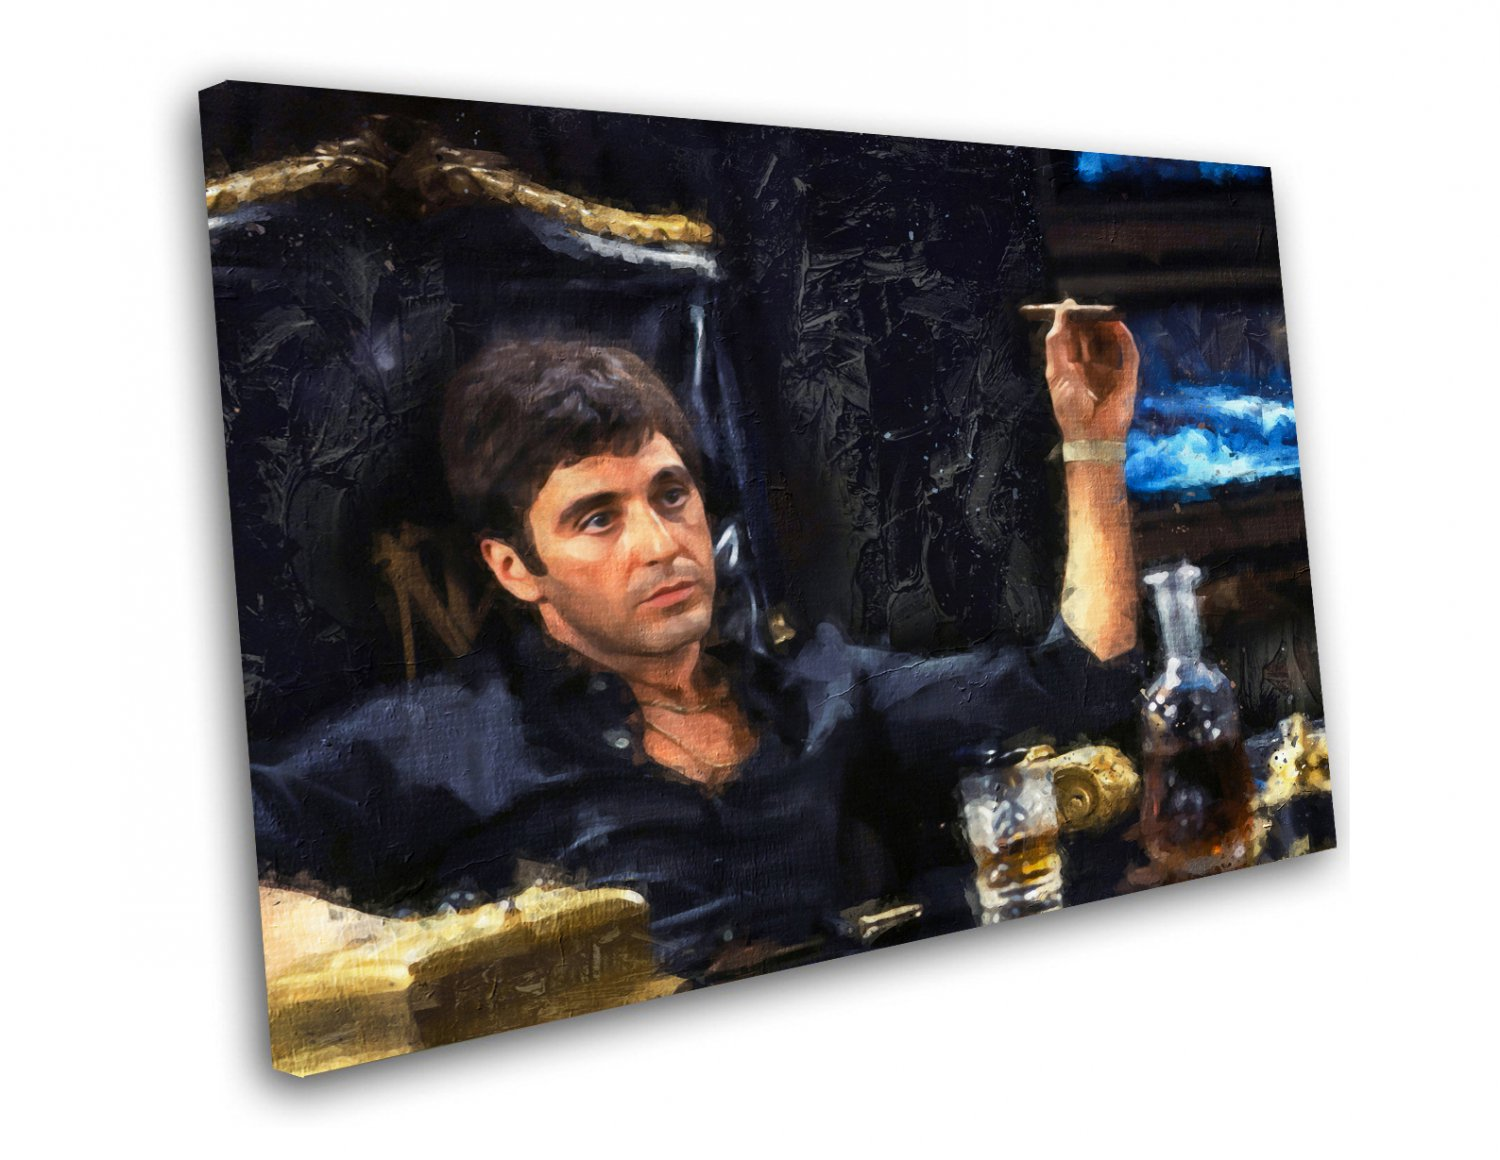 Scarface, Al Pacino, Tony Montana  10x14 inches Stretched Canvas